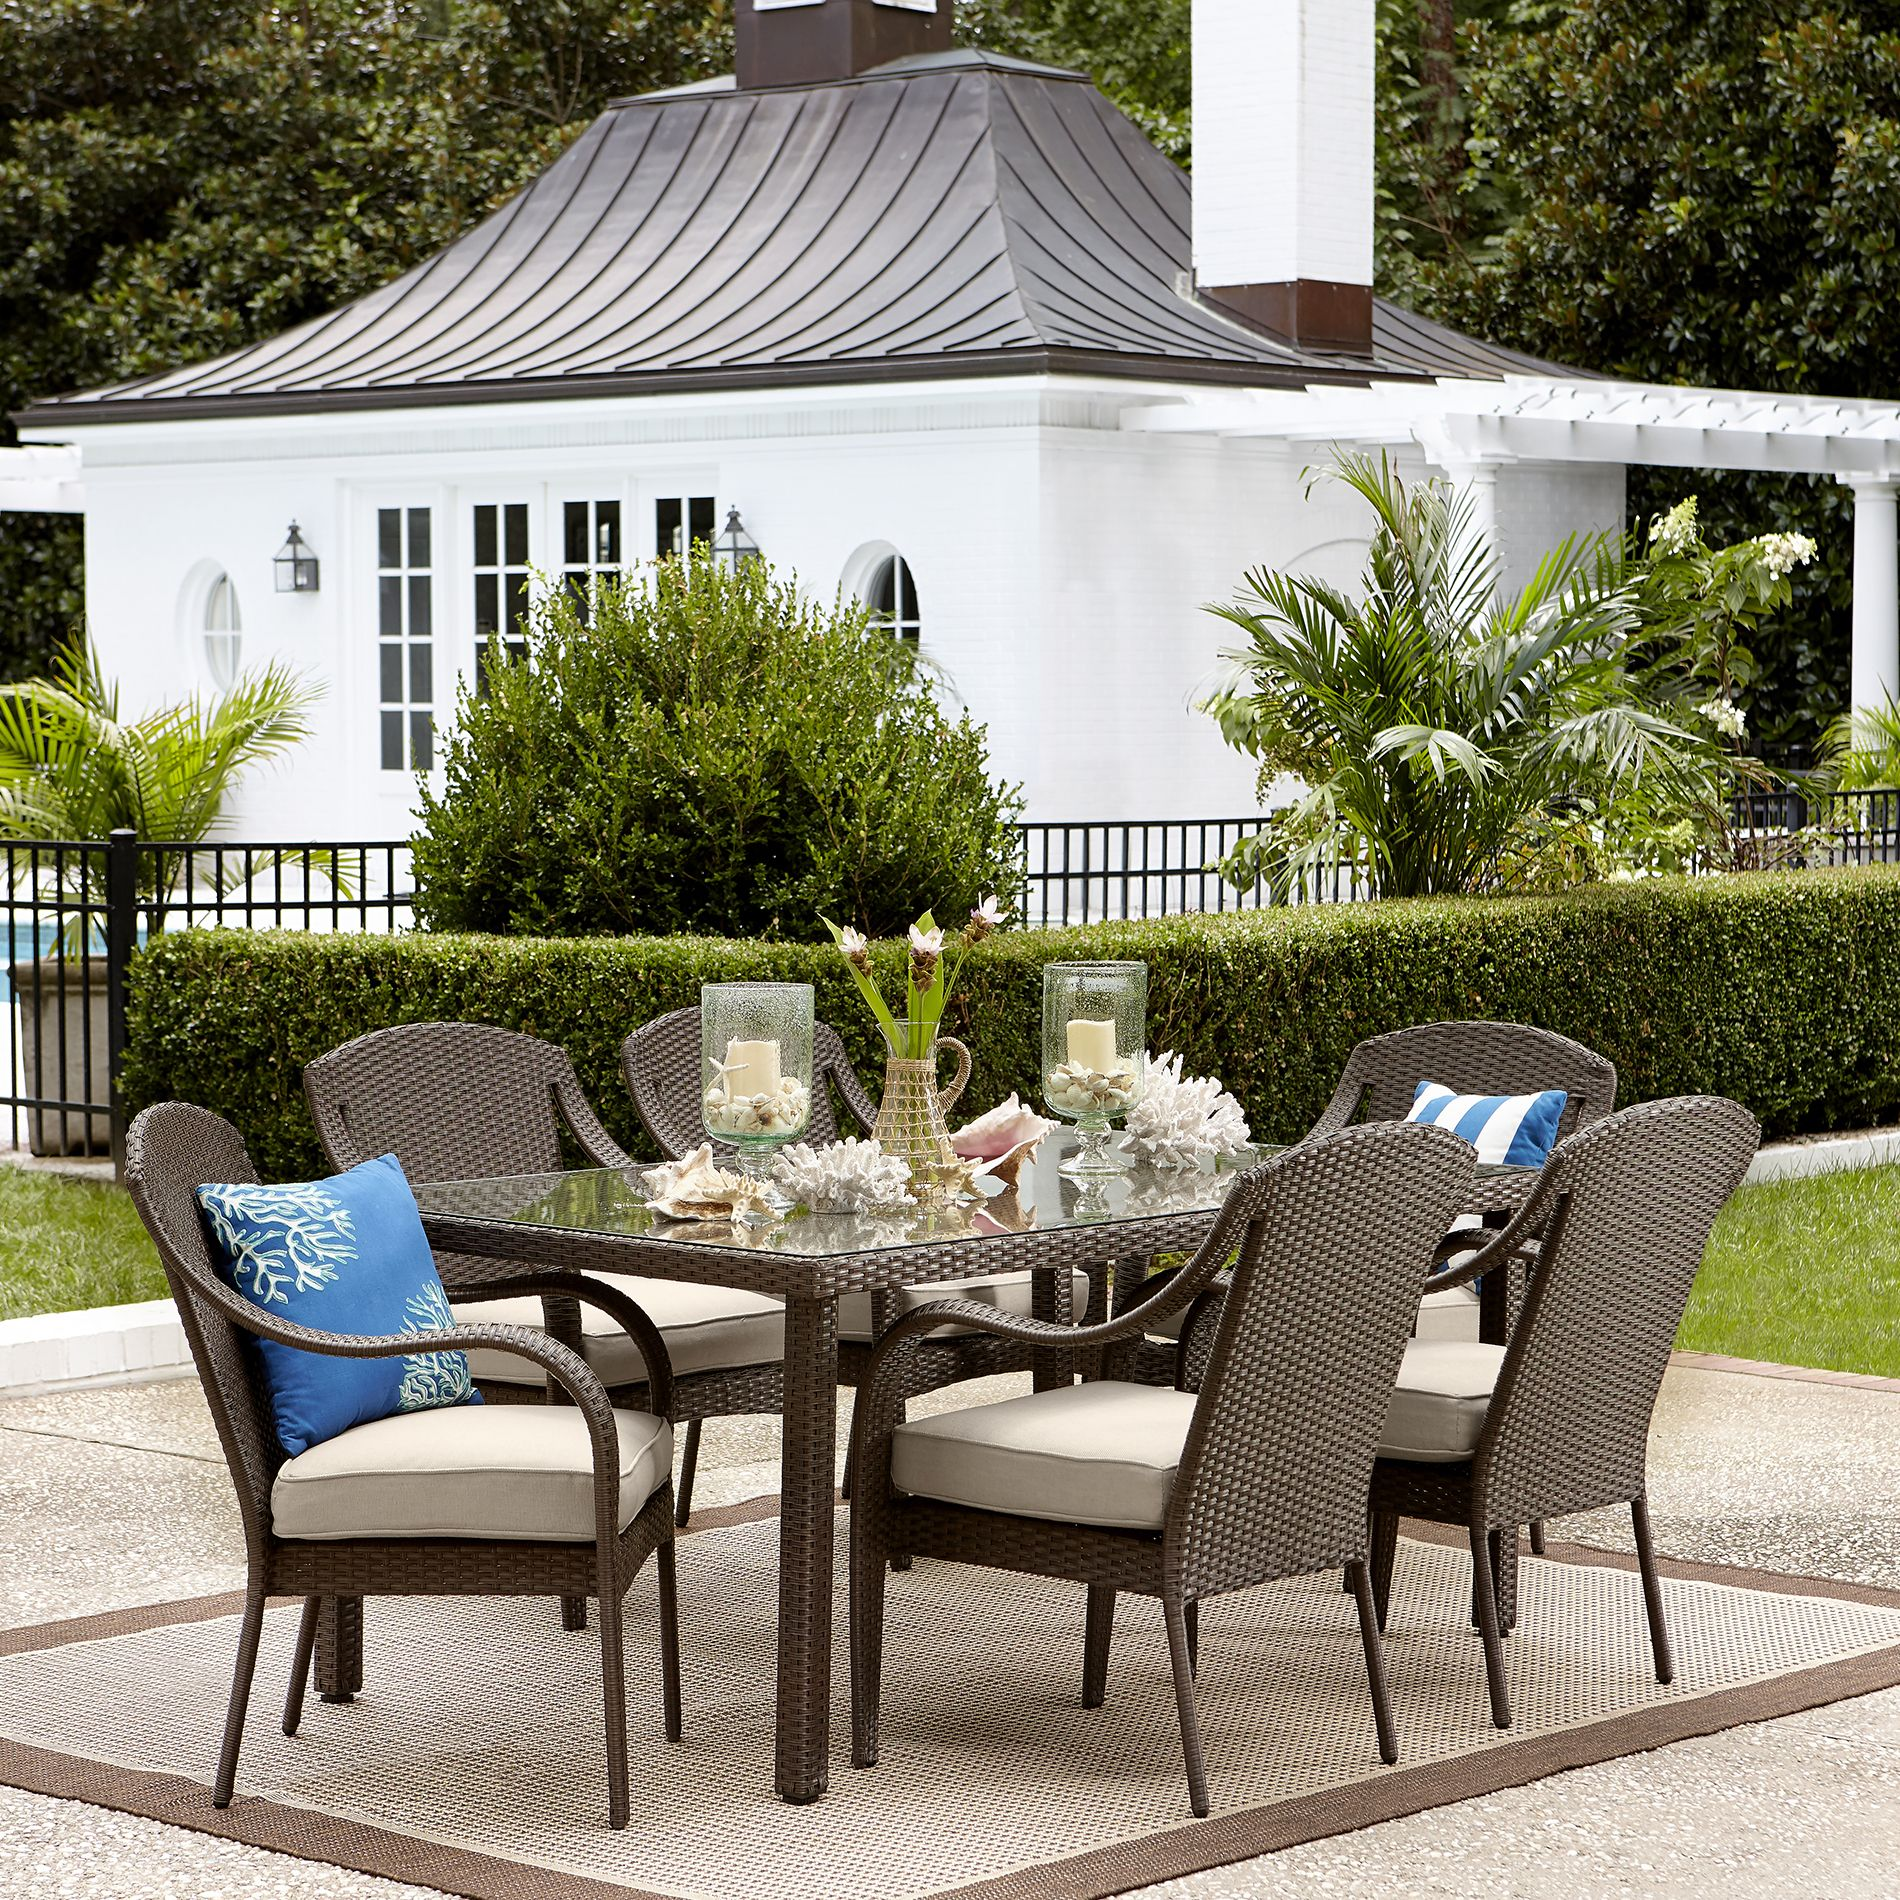 grand resort summerfield 7 piece patio dining set http www